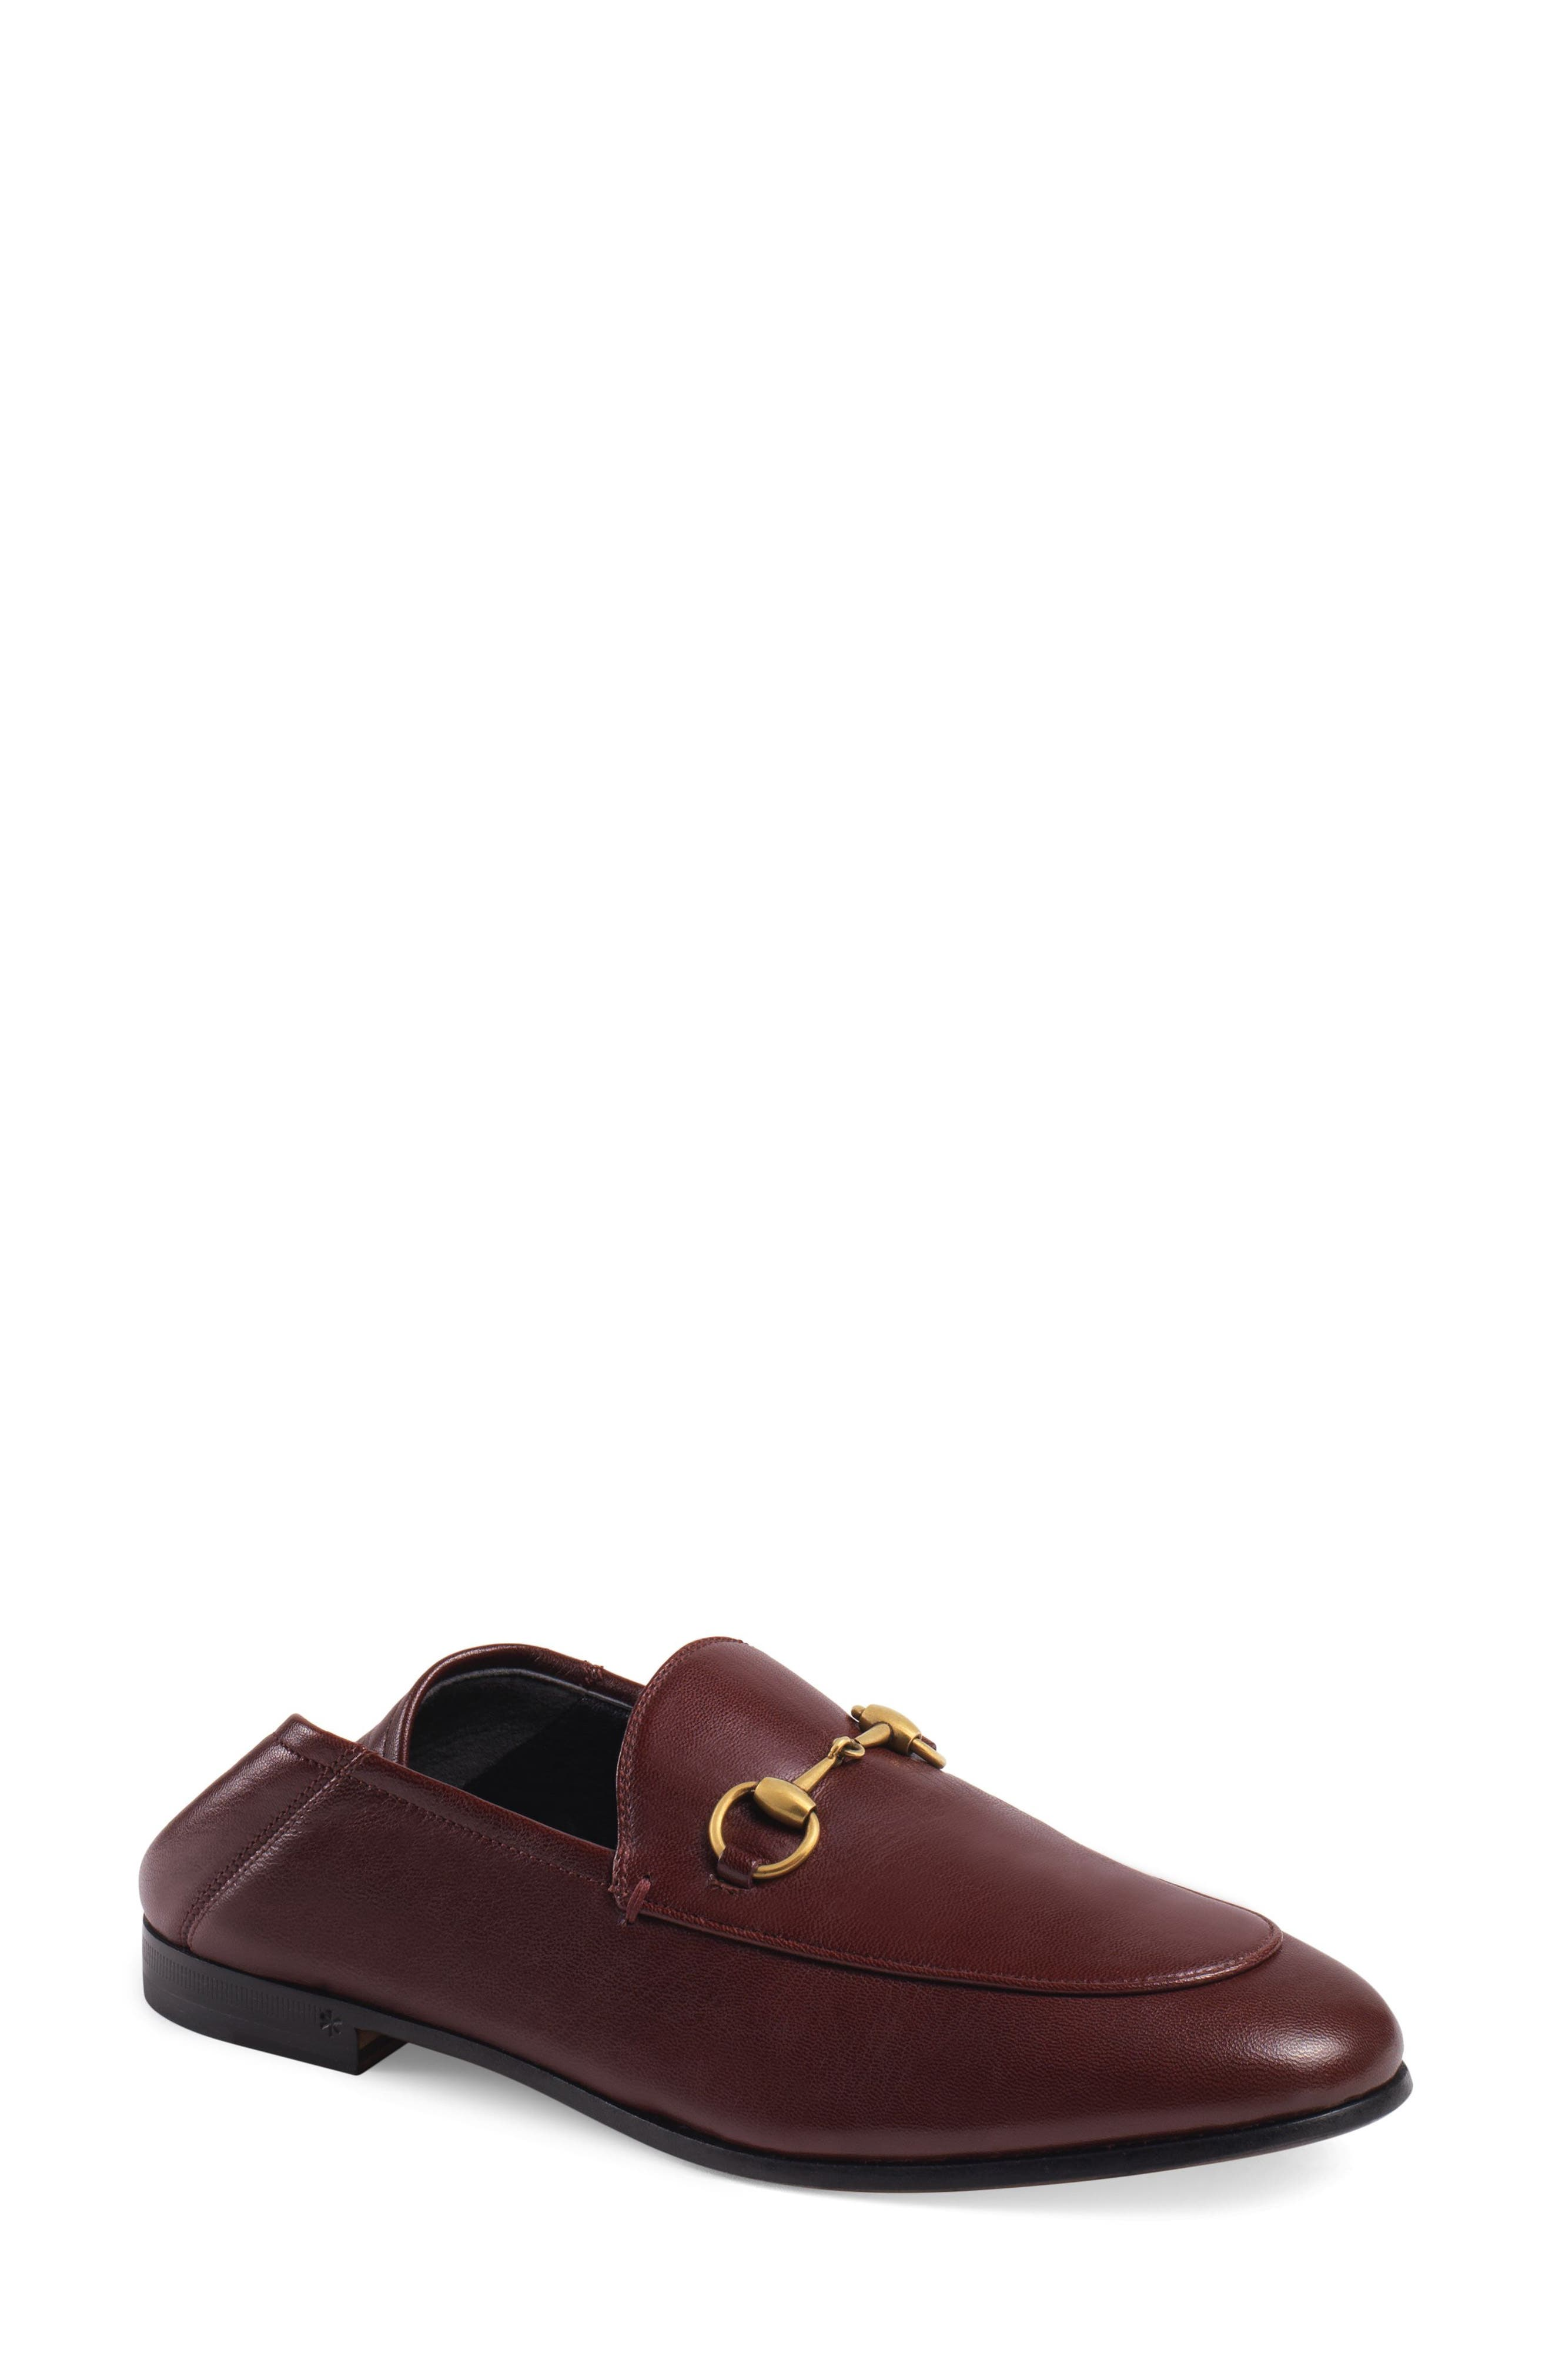 Brixton Convertible Loafer,                             Main thumbnail 1, color,                             VINTAGE BORDEAUX